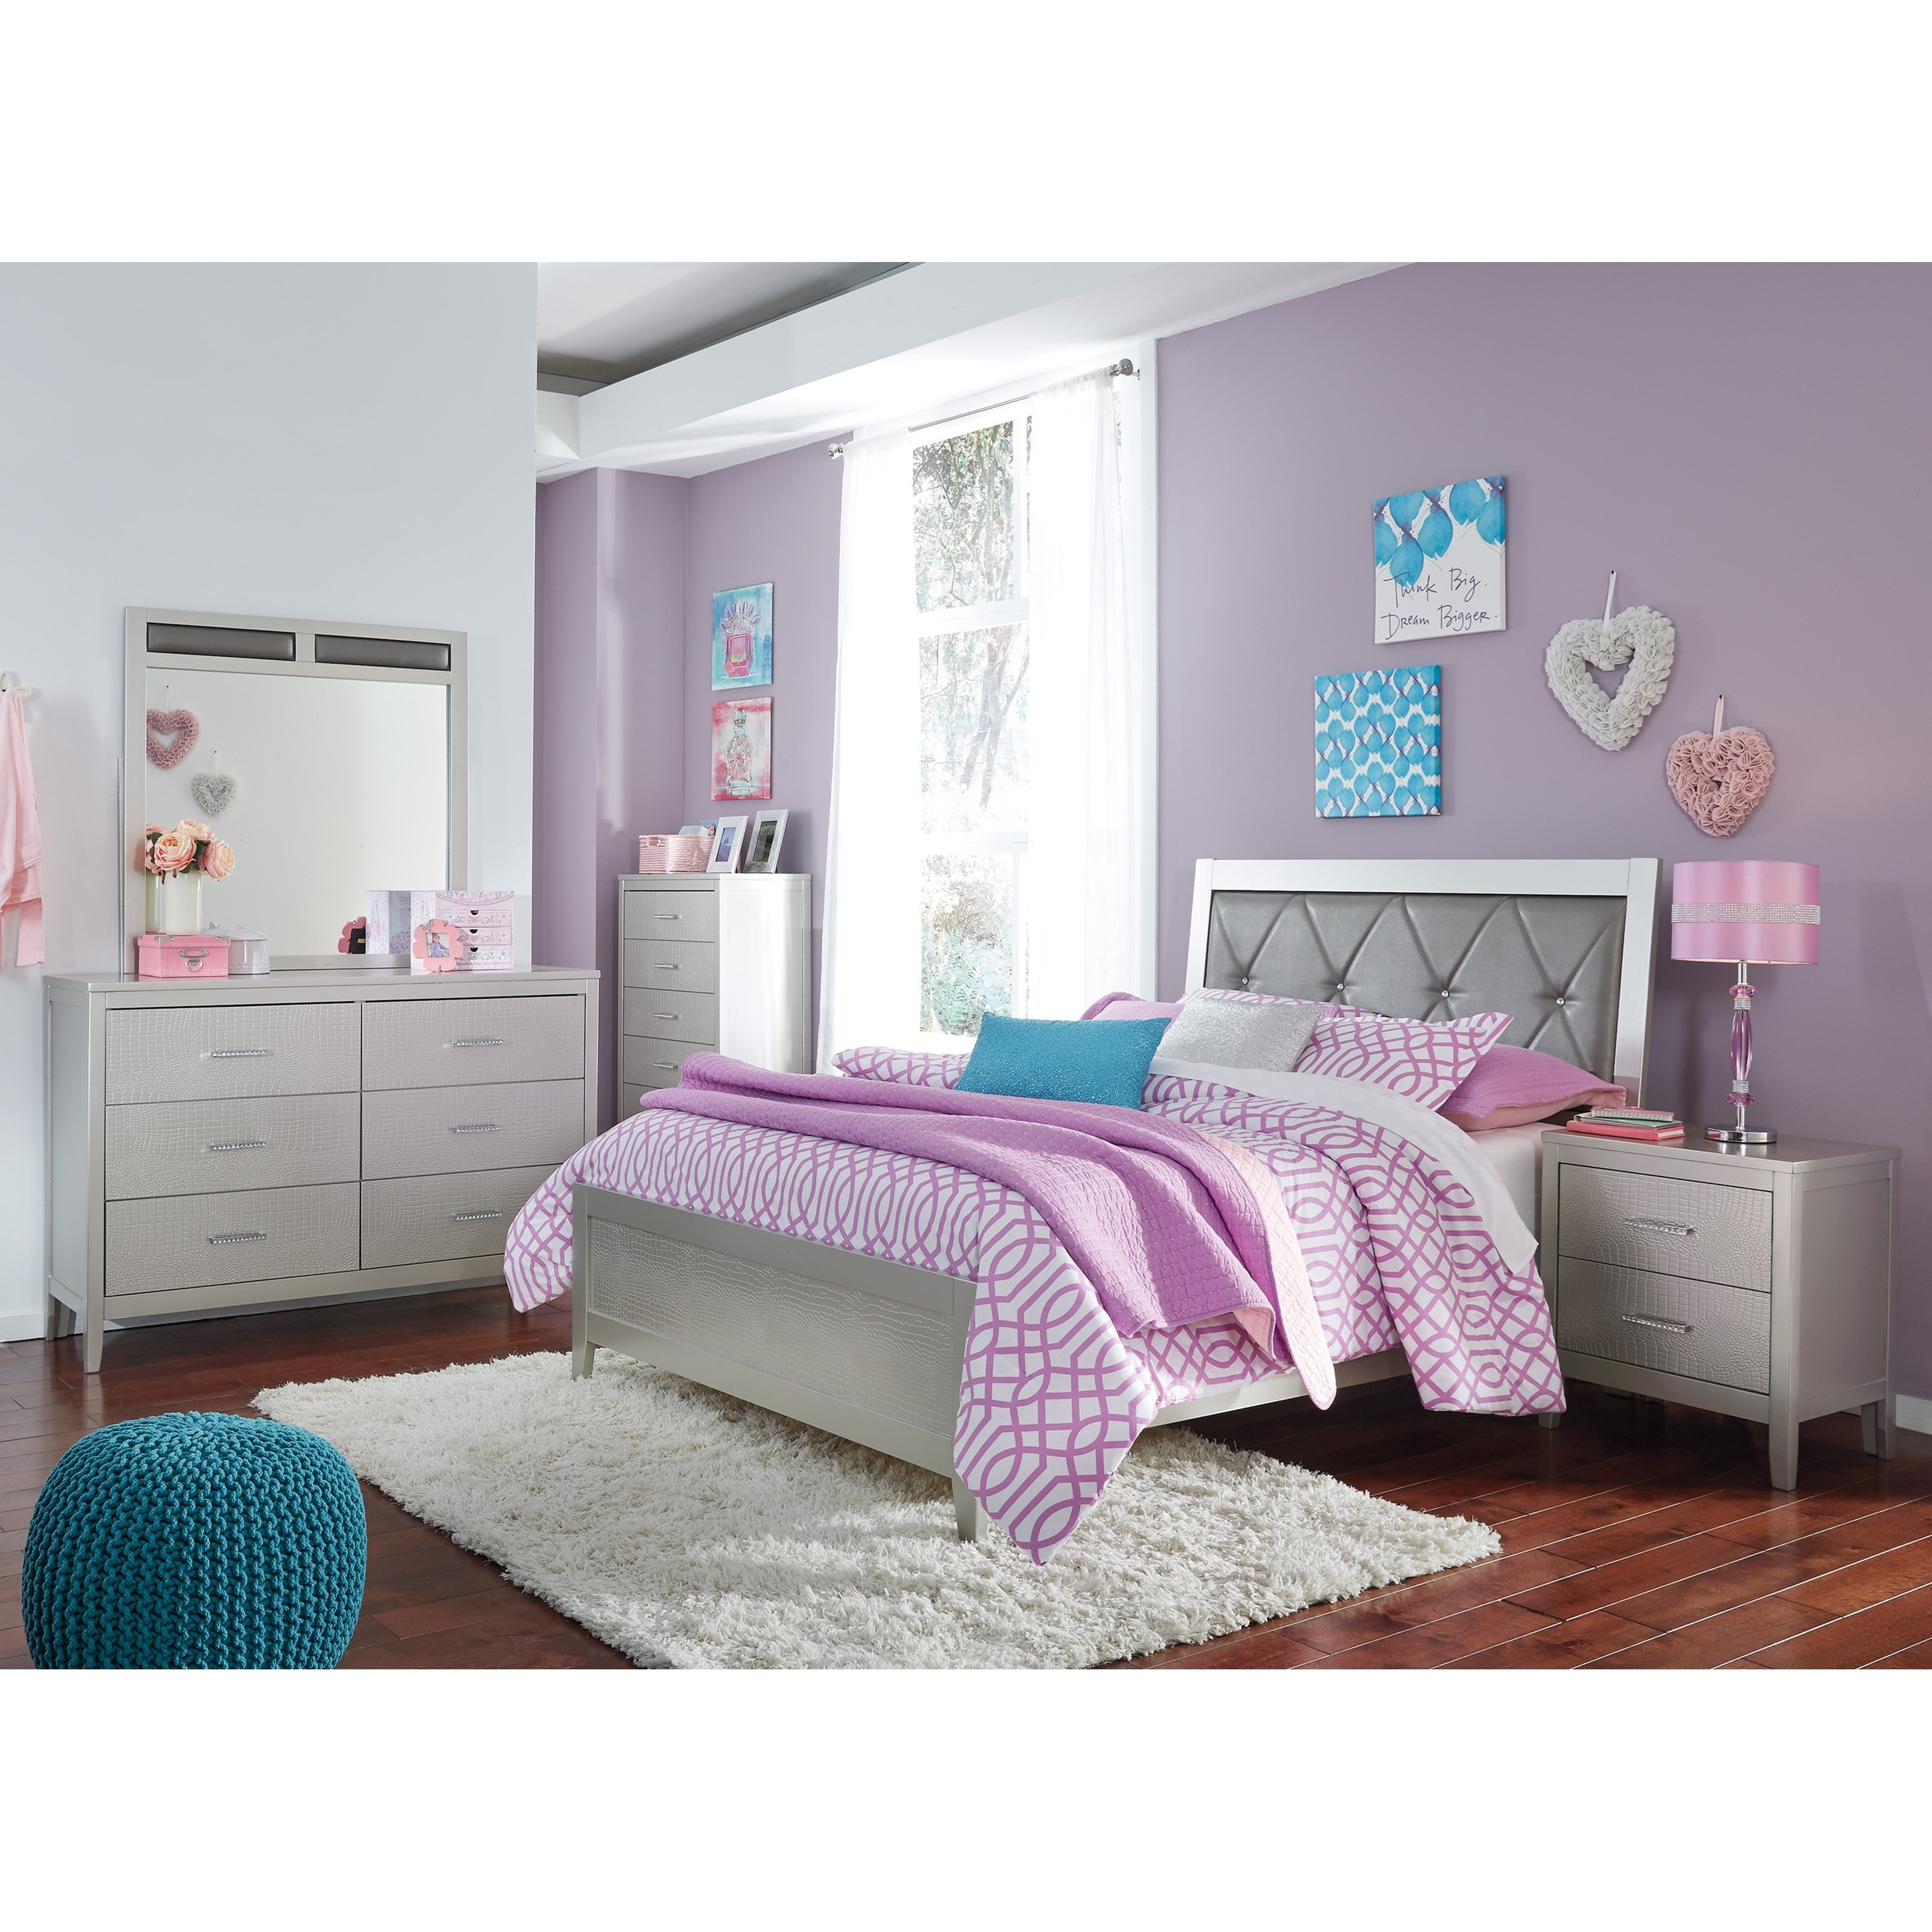 Del sol as olivet glam full bedroom group del sol - Ashley furniture full bedroom sets ...